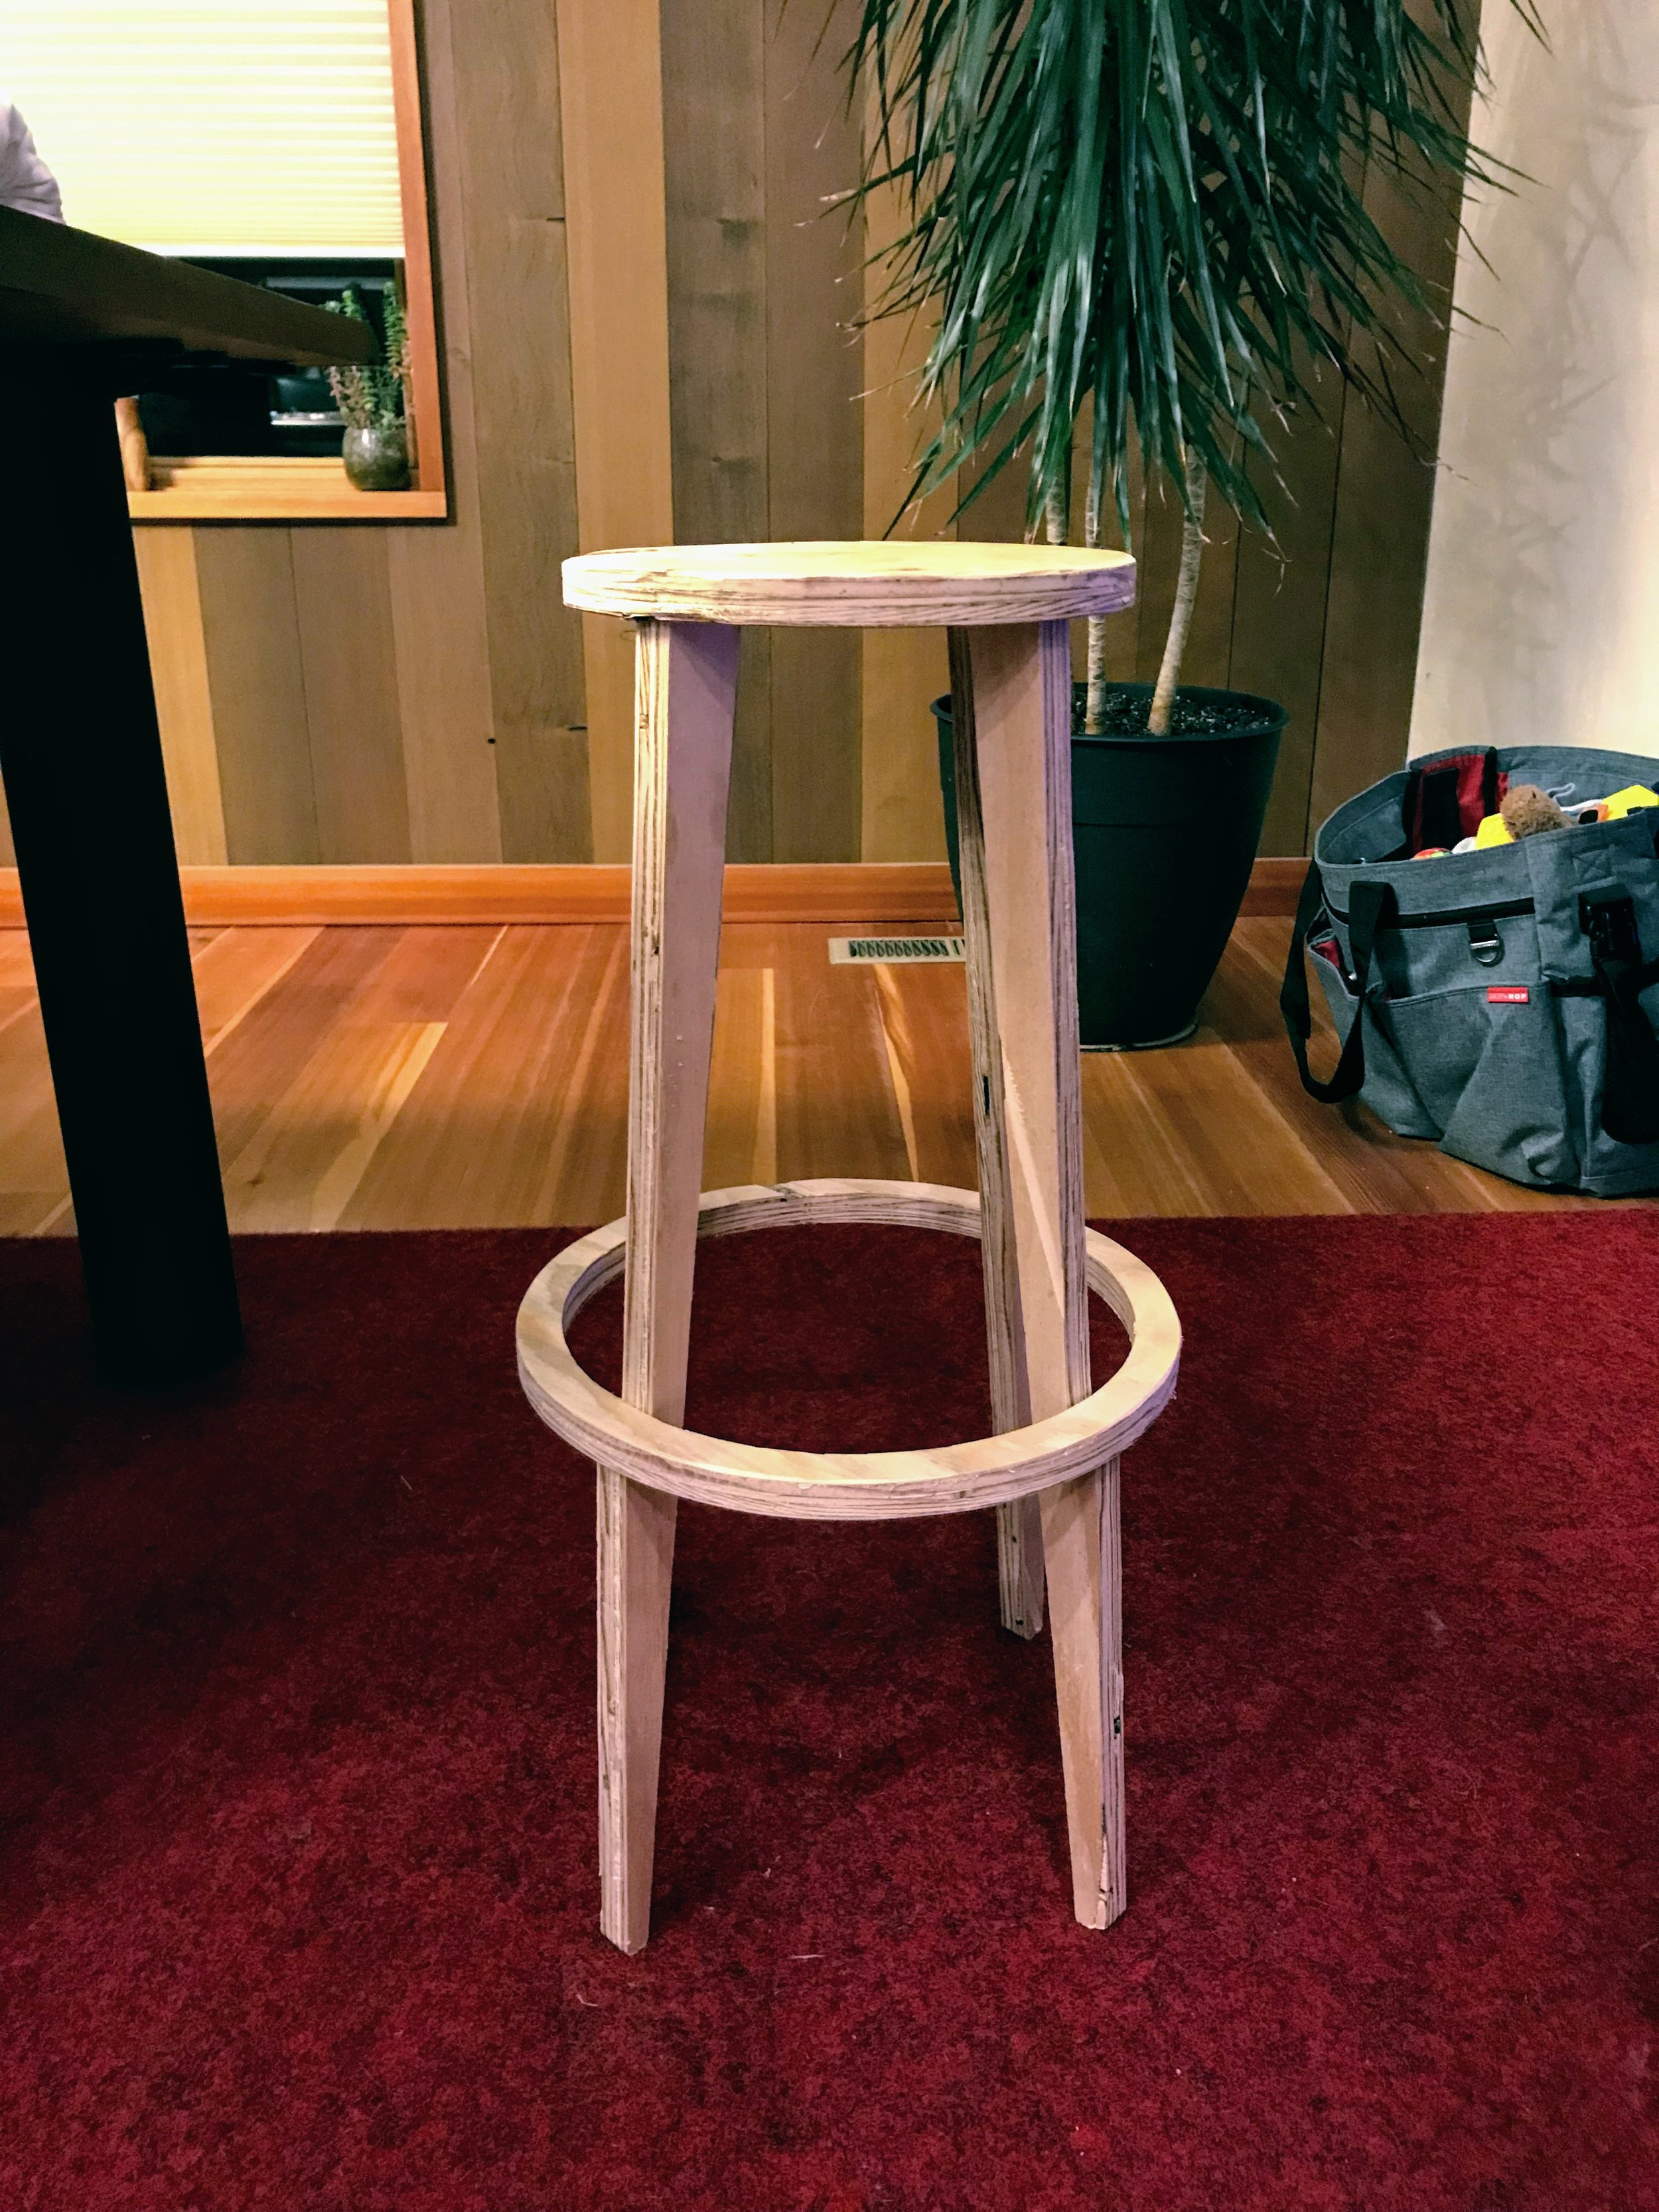 theRatchet build this open source stool from OpenDesk